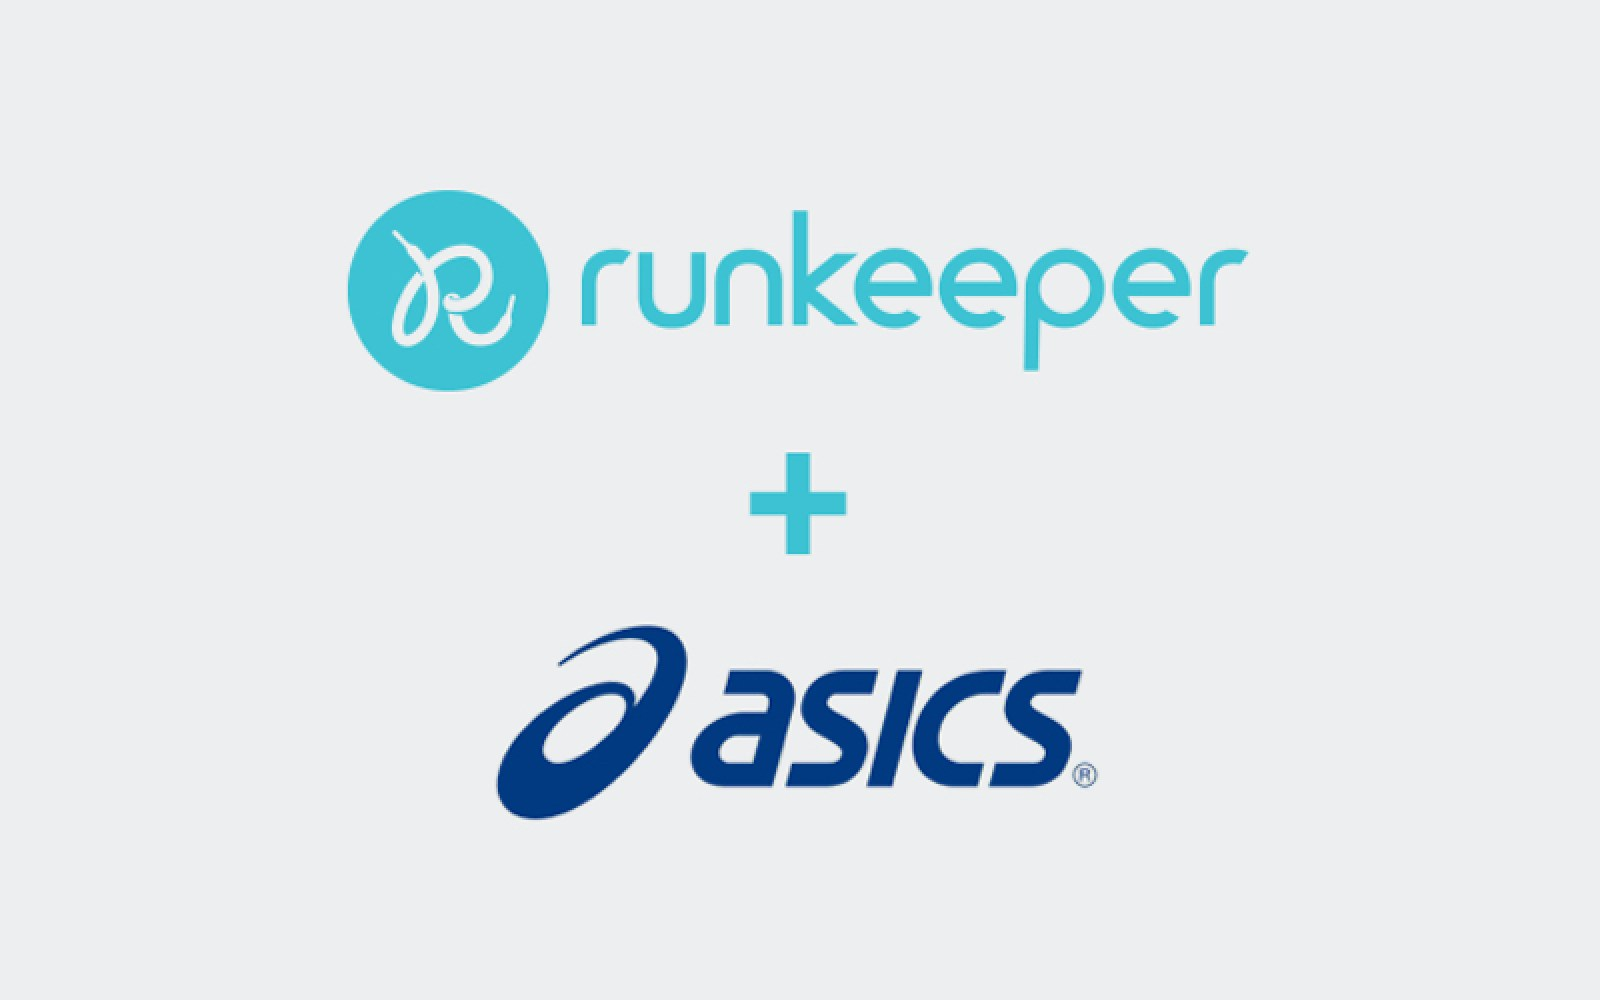 ASICS will acquire Runkeeper, following Adidas and Under Armor's example